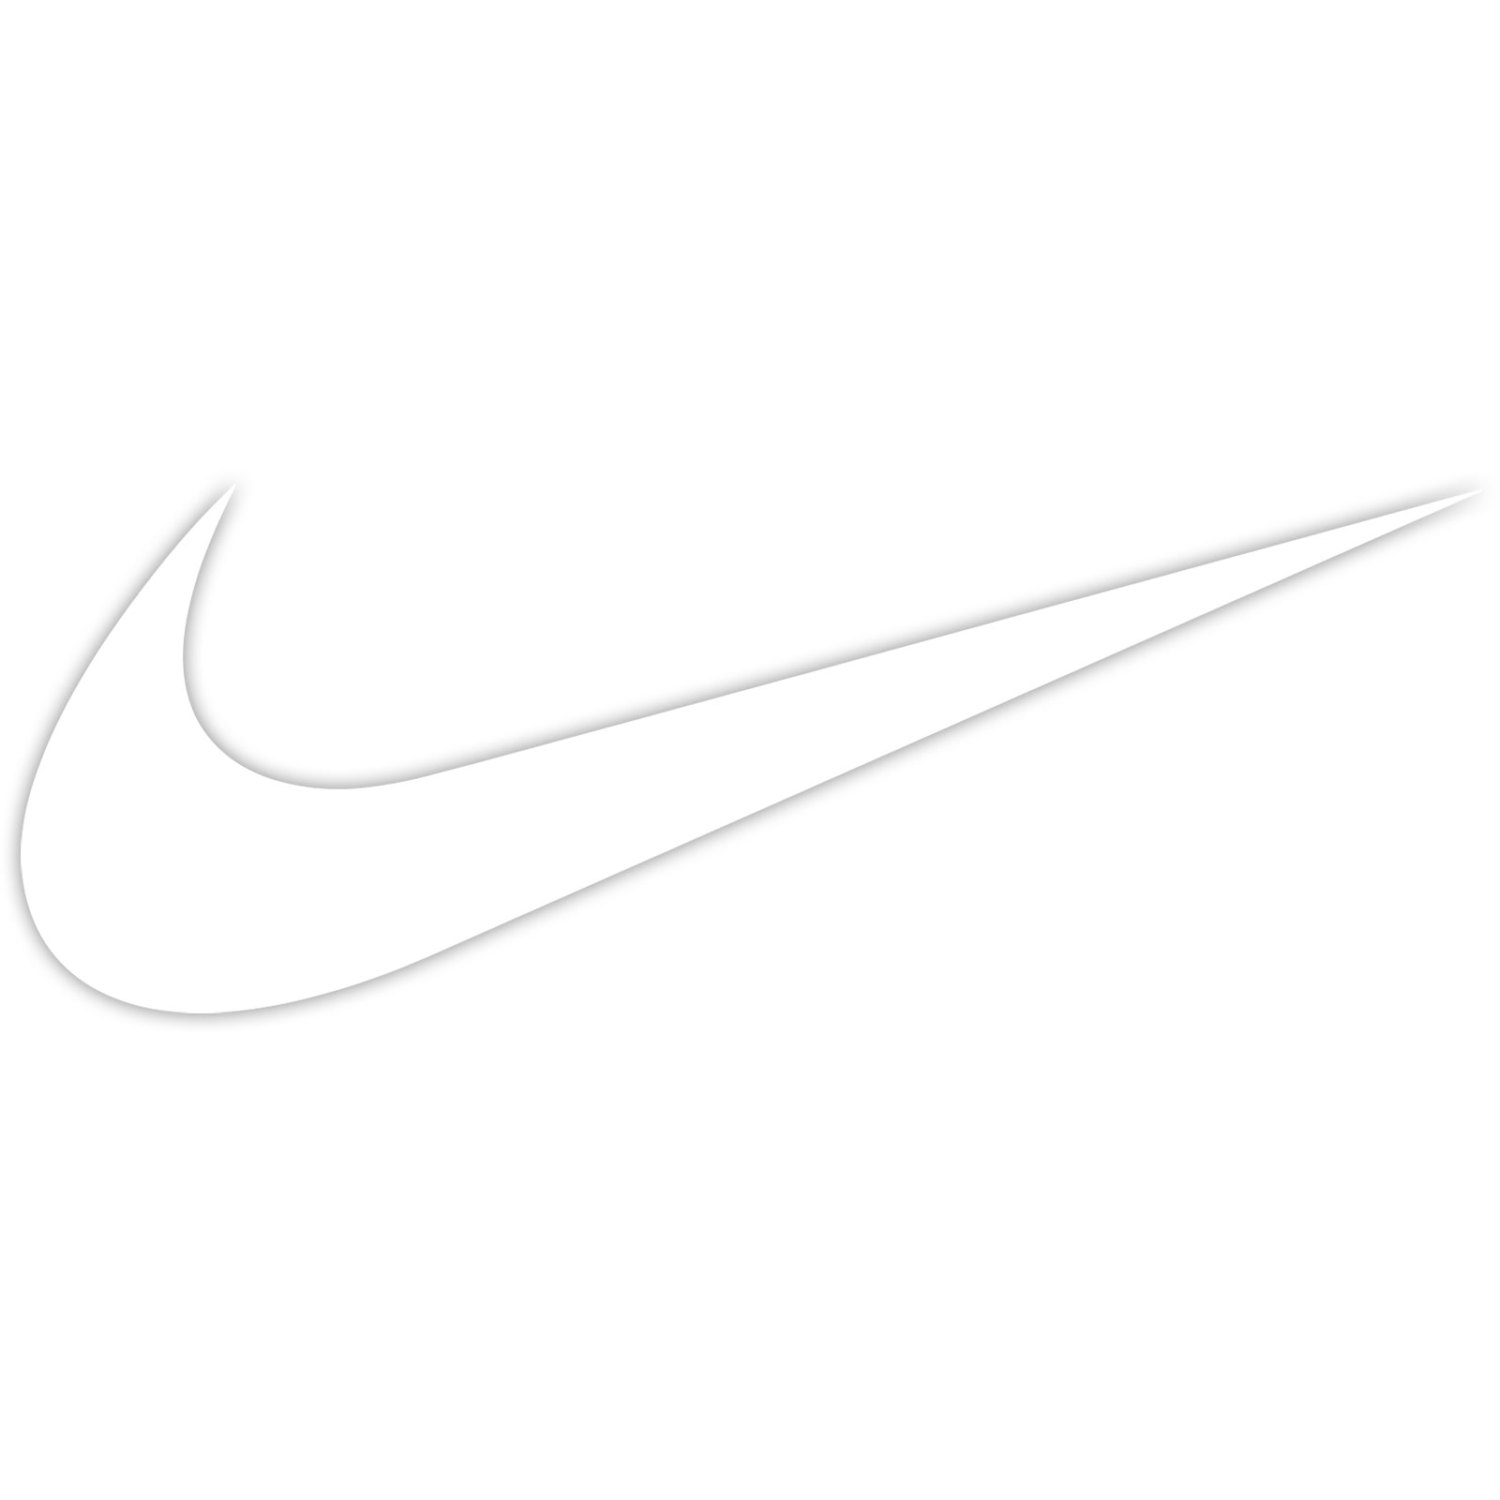 White nike logo png Transparent pictures on F.